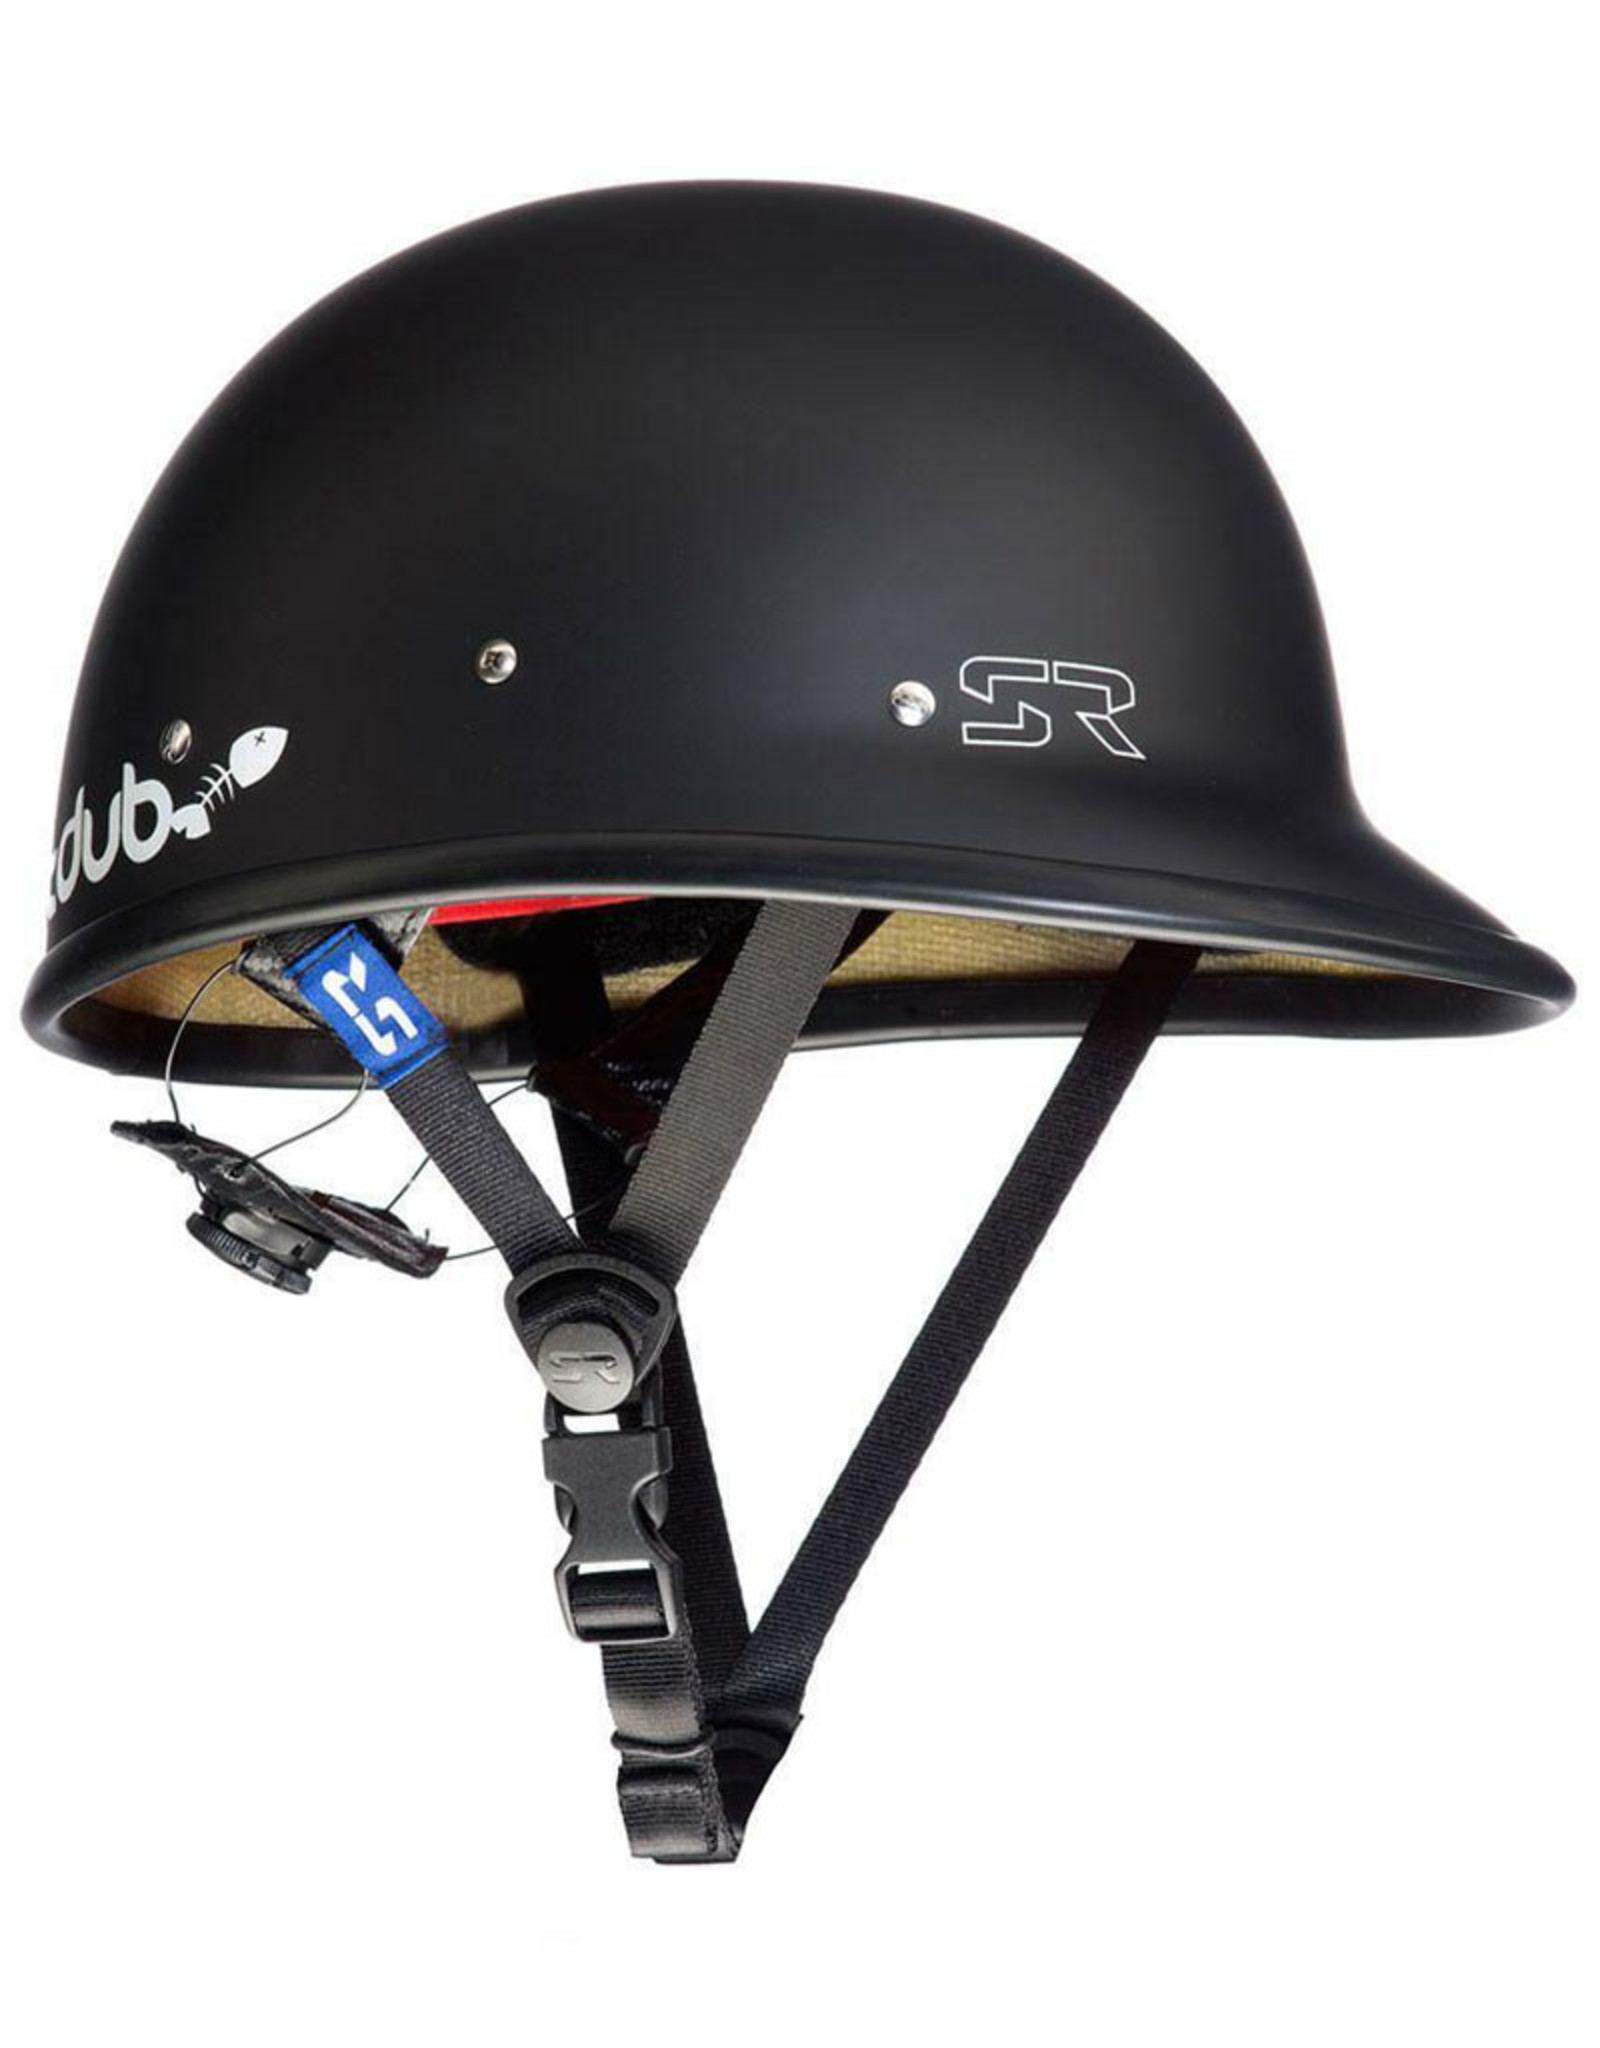 Shred Ready Shred Ready TDub Helmet